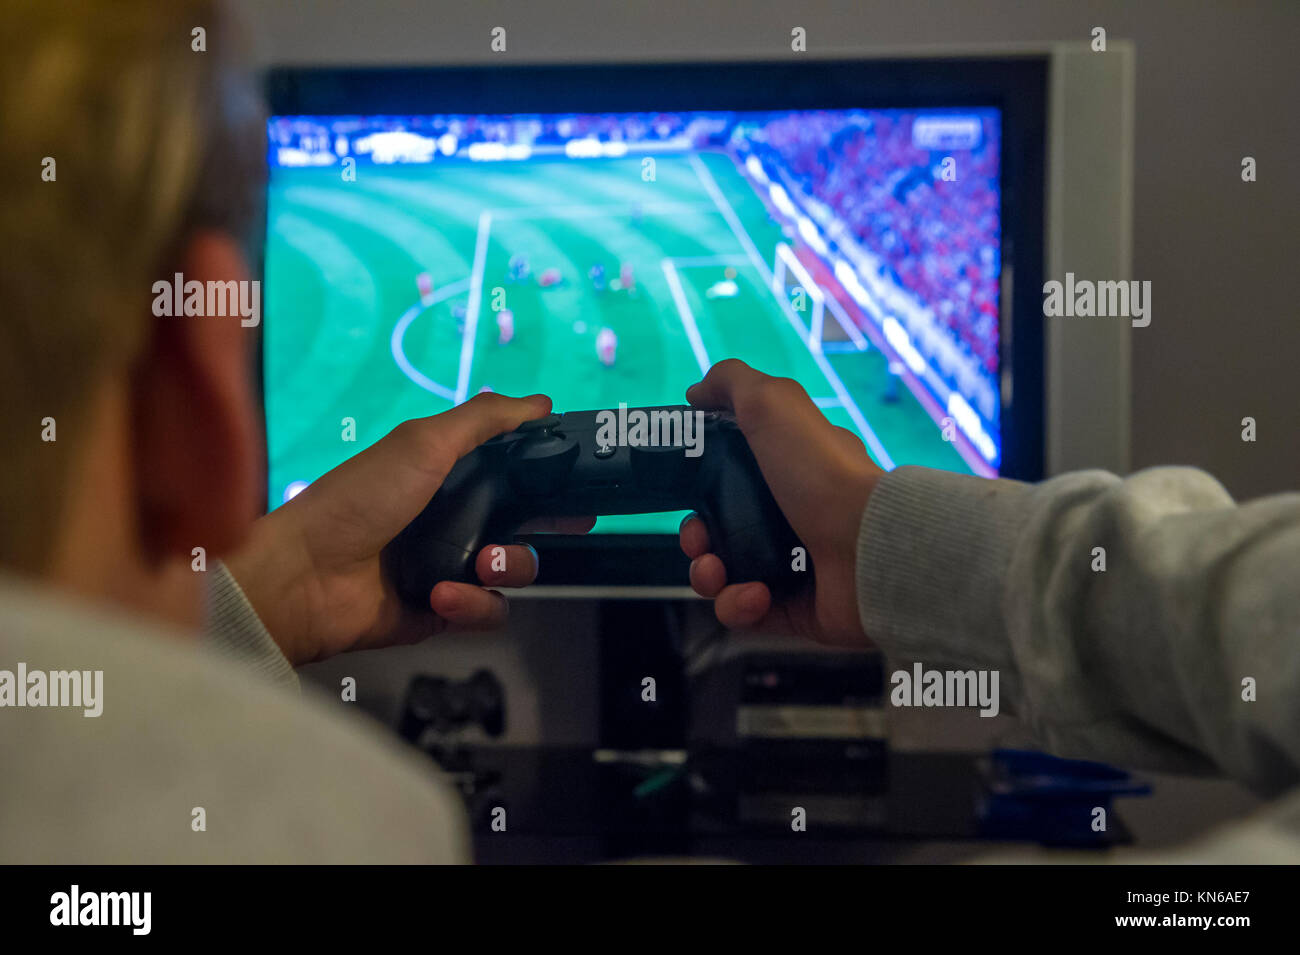 A boy plays a football game on his playstation console - Stock Image